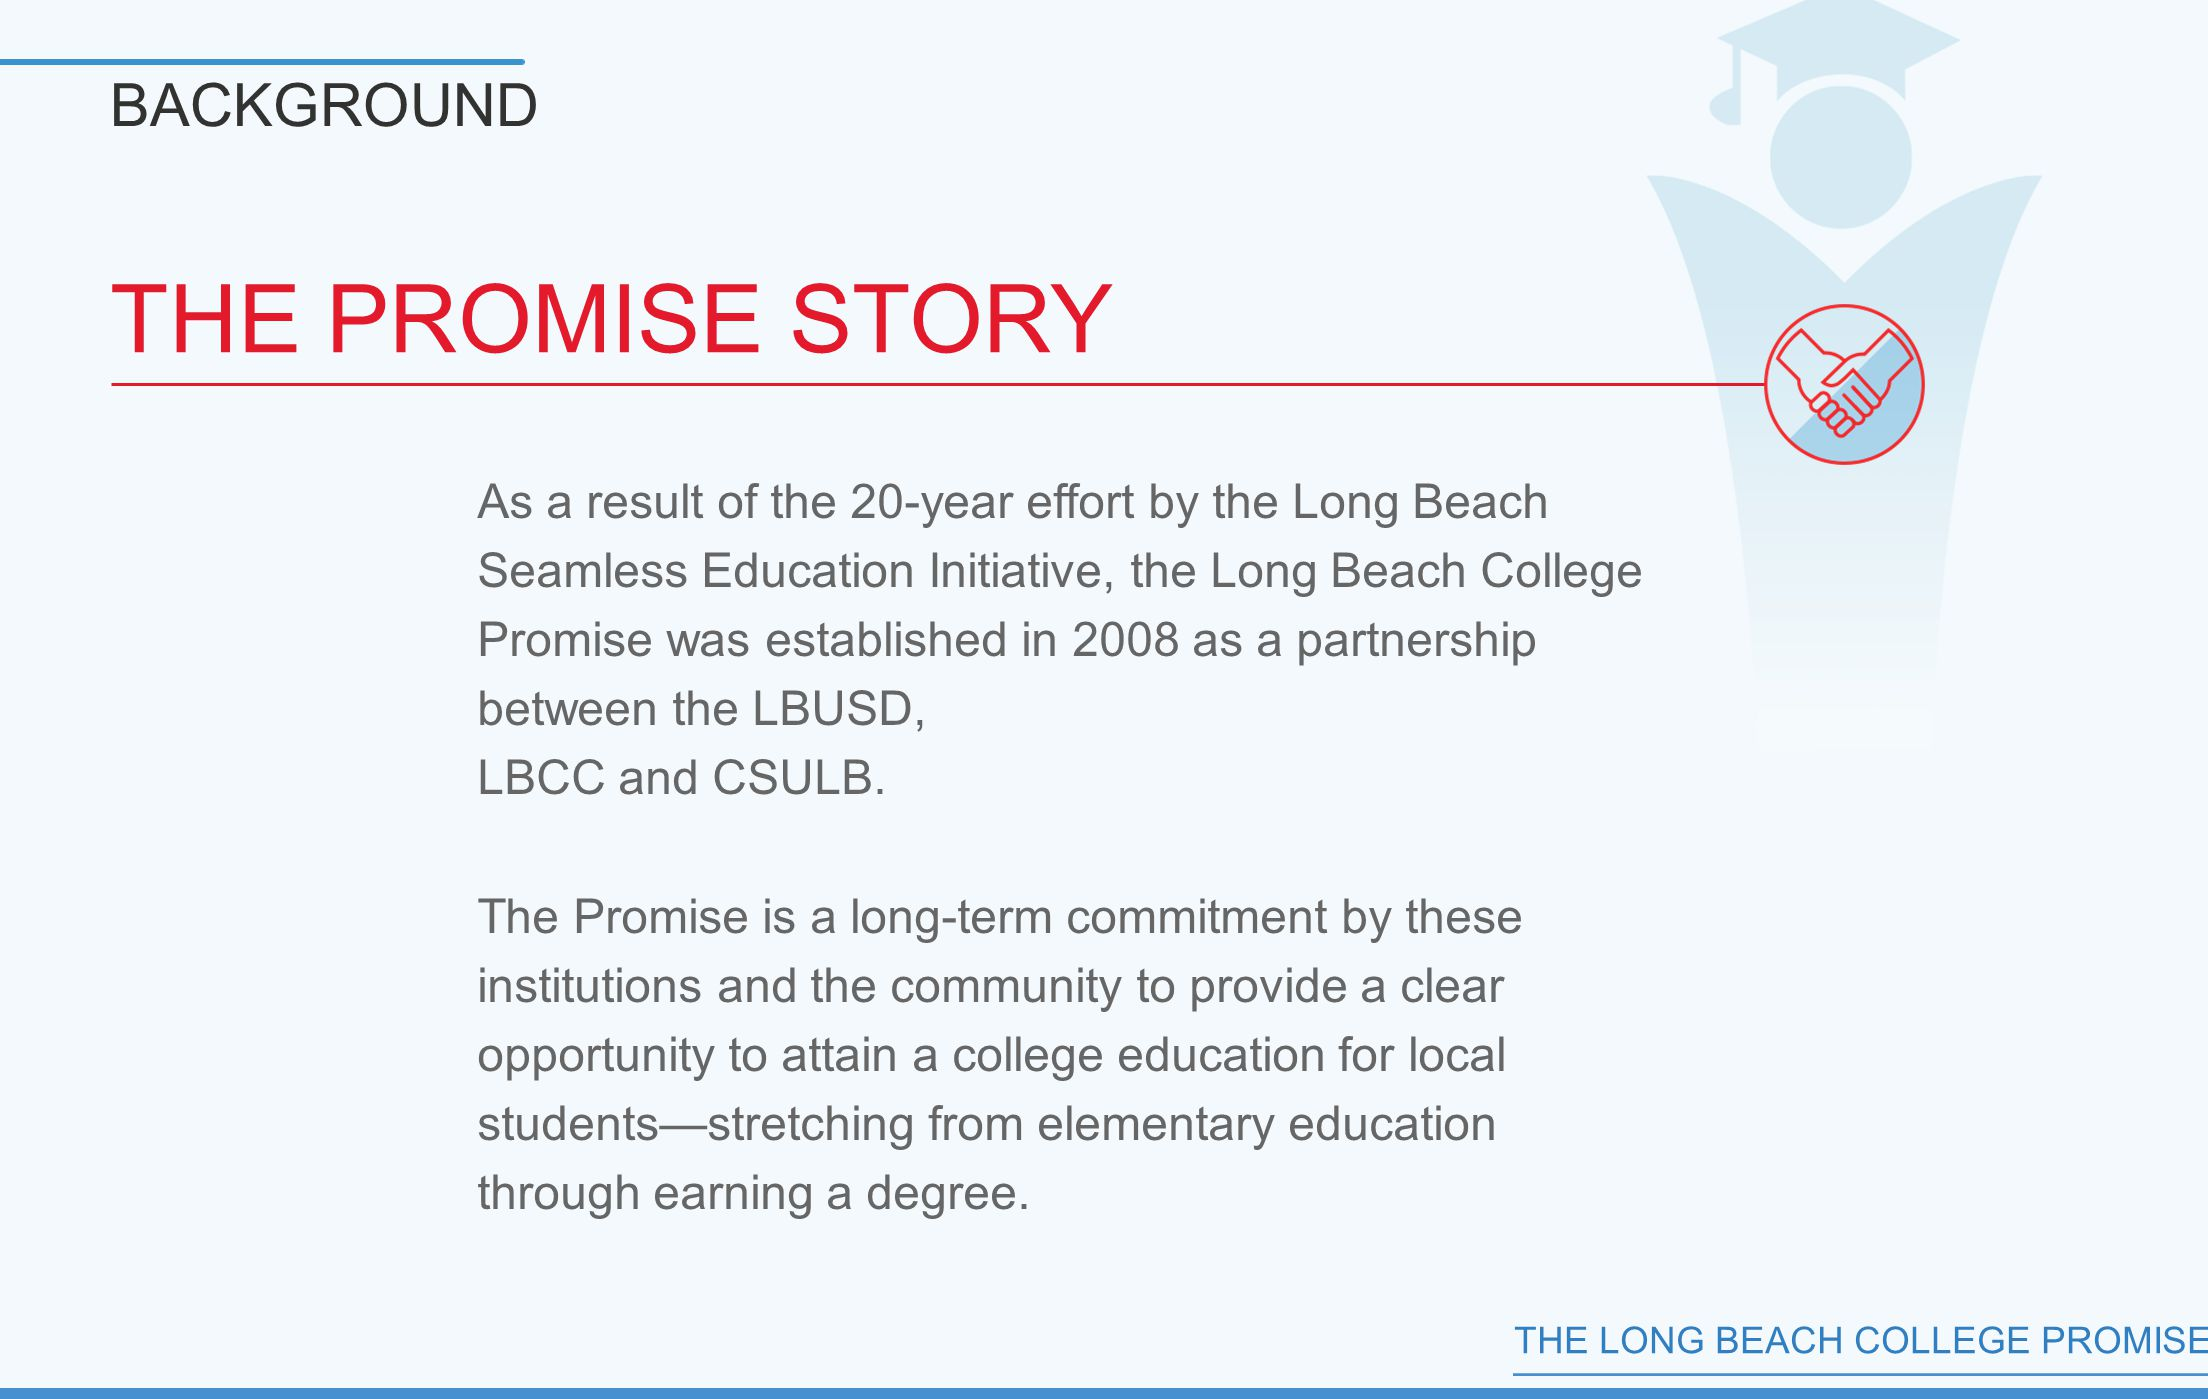 THE LONG BEACH COLLEGE PROMISE BACKGROUND THE PROMISE STORY As a result of the 20-year effort by the Long Beach Seamless Education Initiative, the Long Beach College Promise was established in 2008 as a partnership between the LBUSD, LBCC and CSULB.